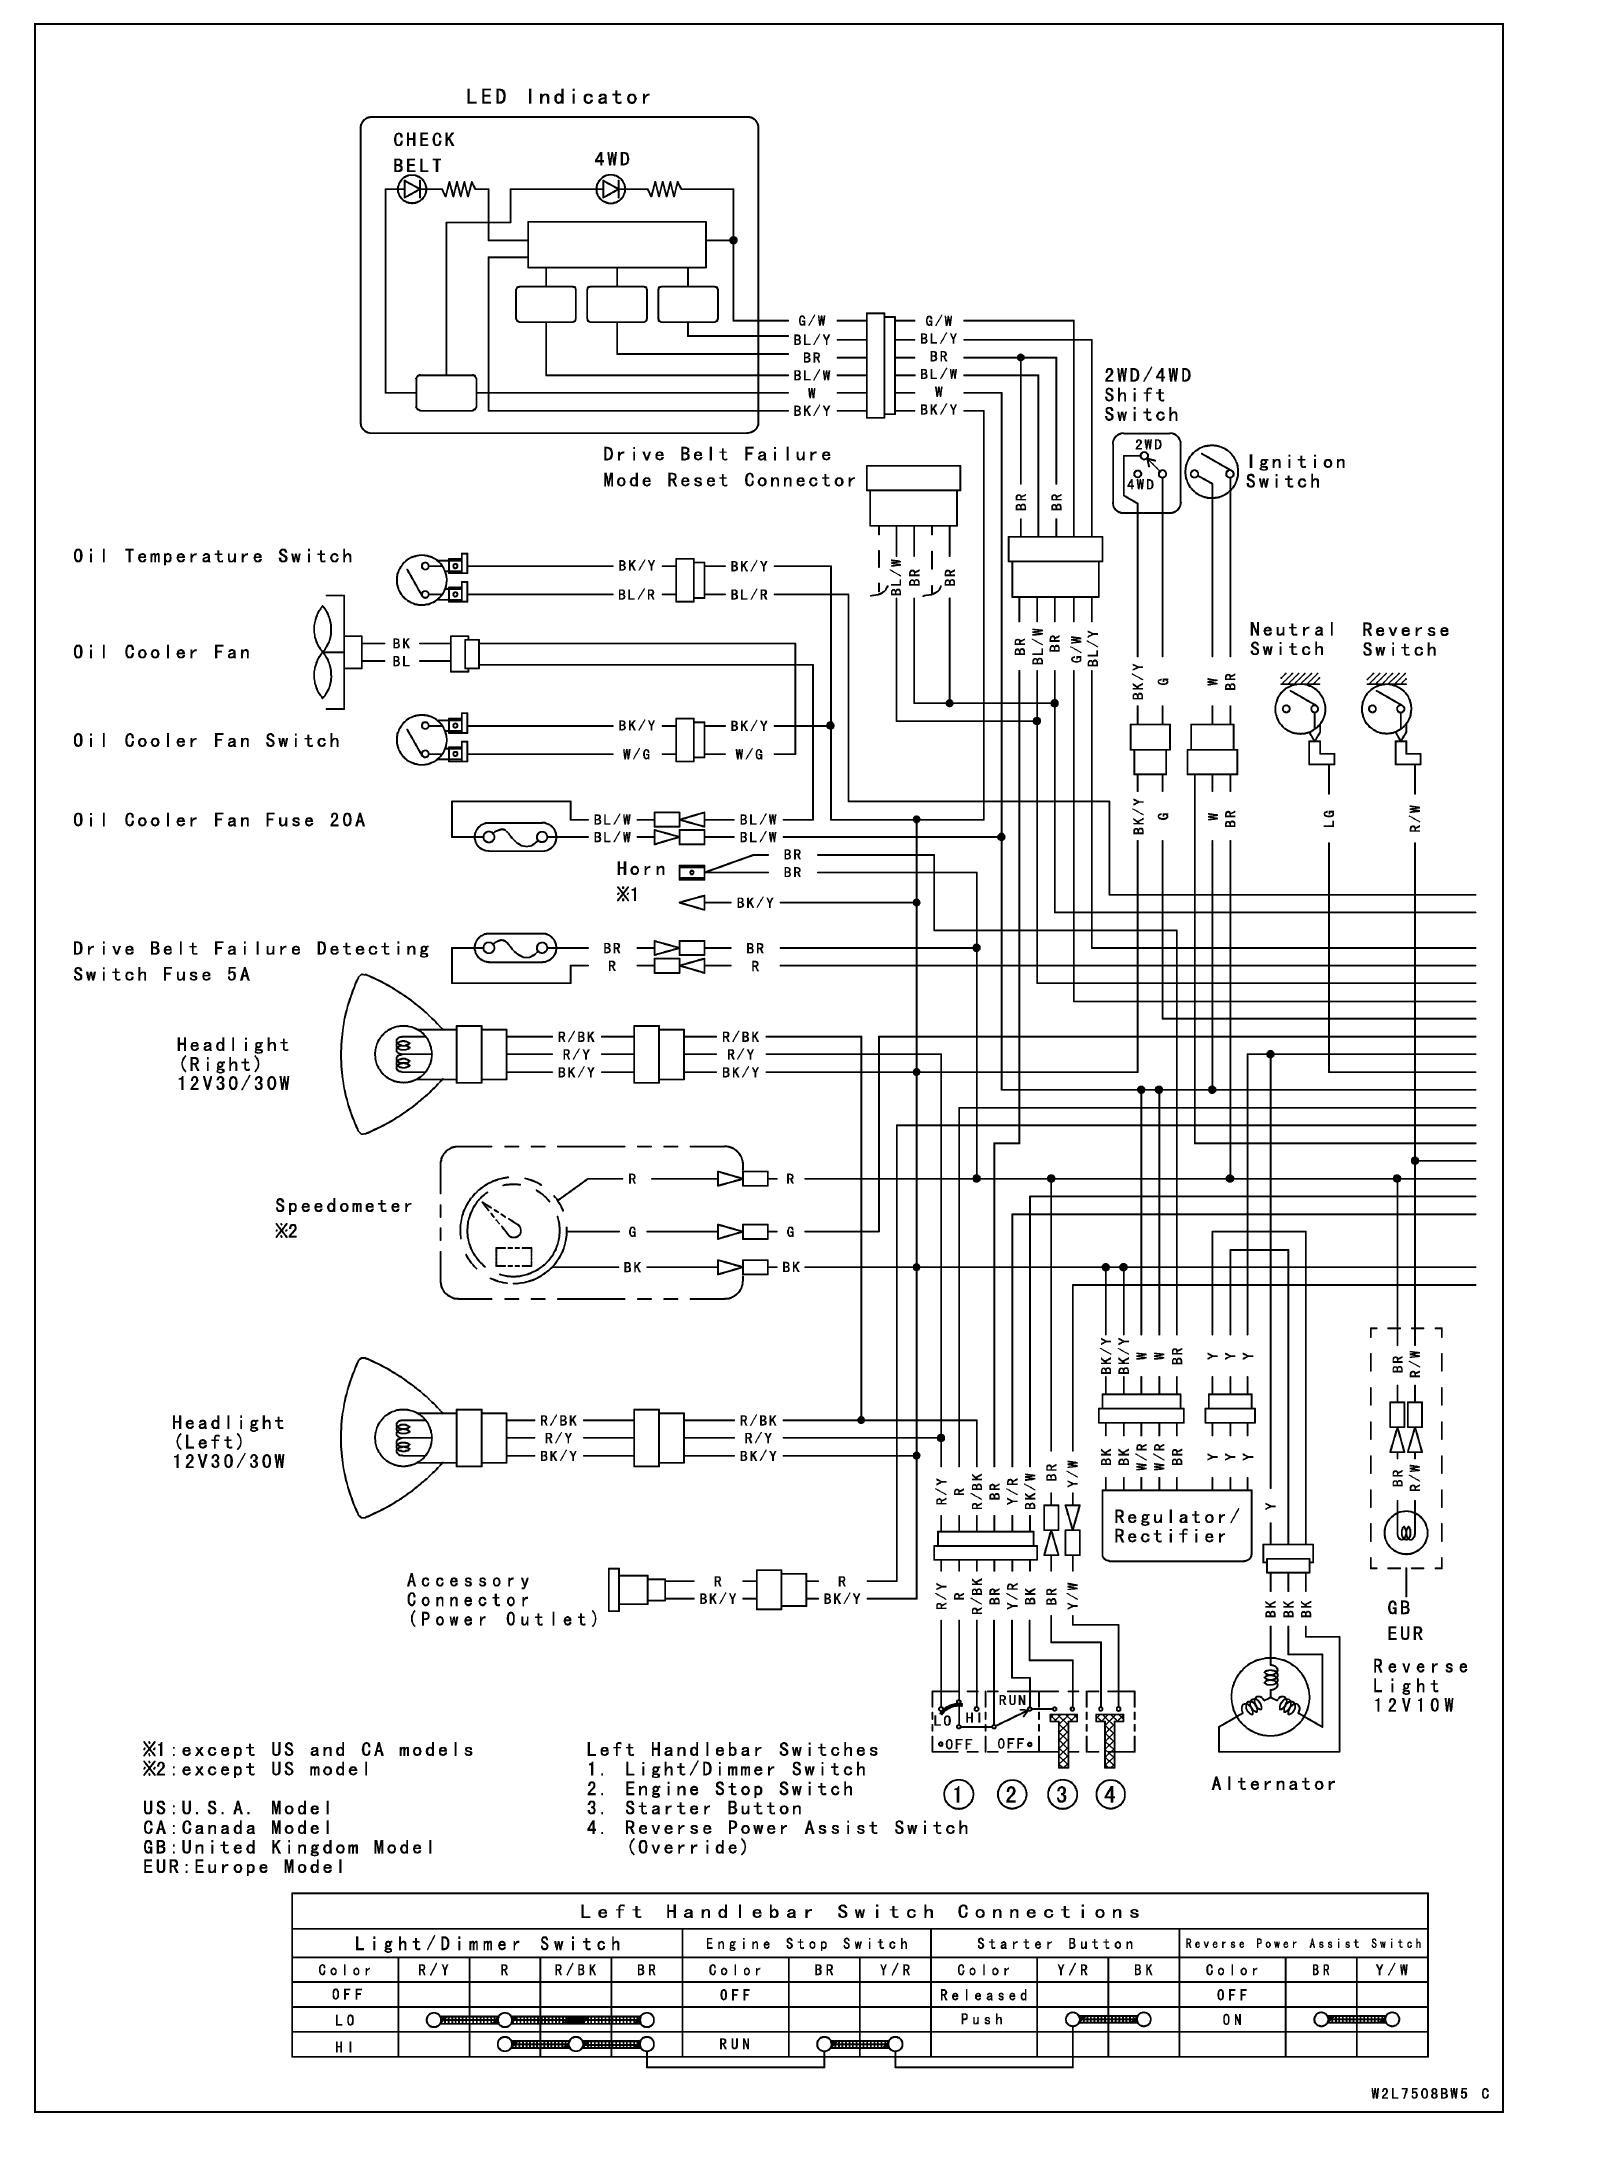 2002 Kawasaki Bayou 220 Wiring Diagram from lh6.googleusercontent.com